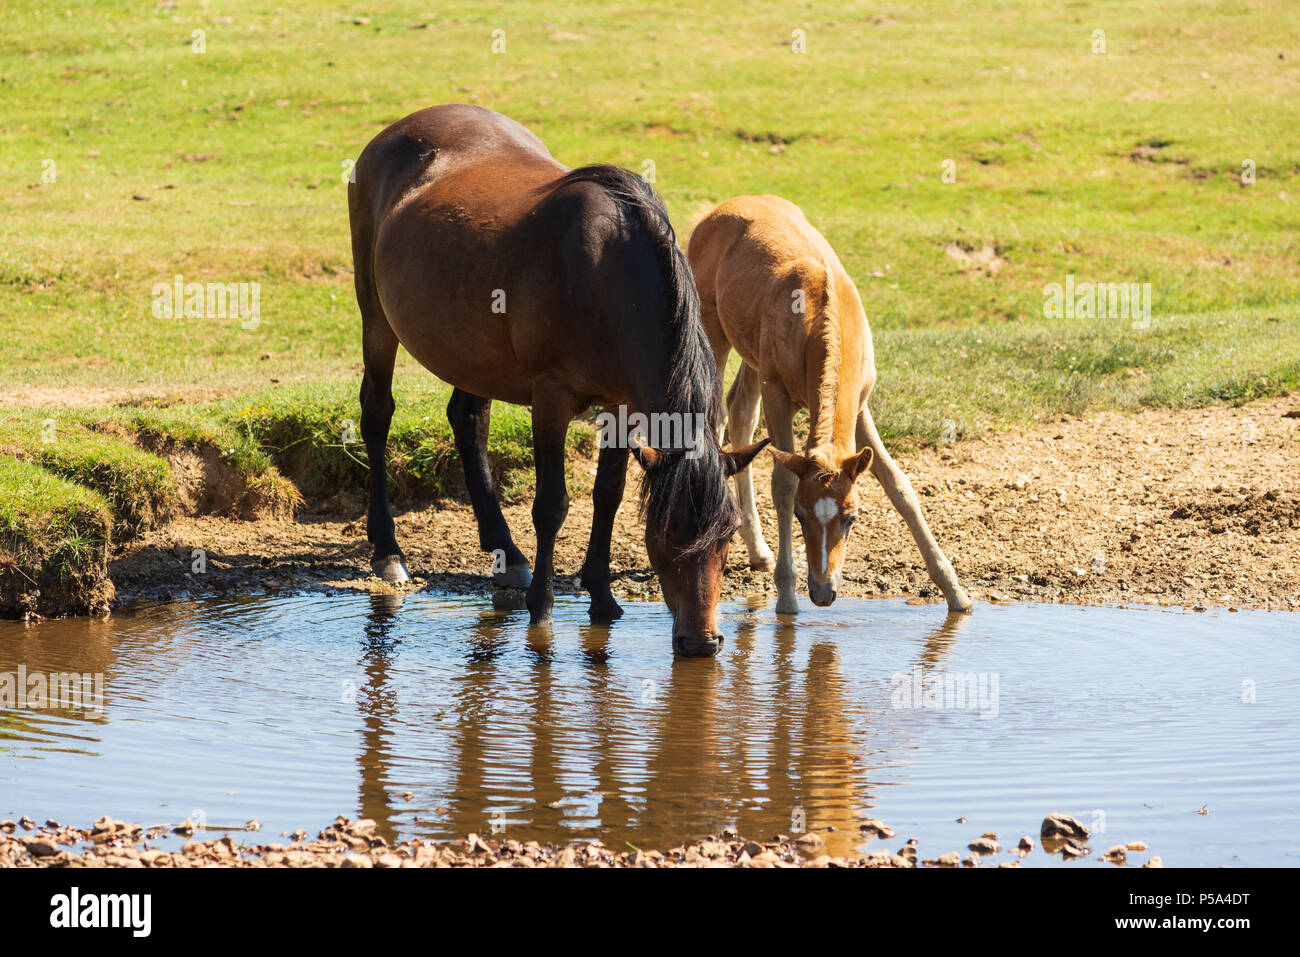 New Forest, Hampshire, UK, 26th June 2018, Weather: Heatwave conditions in the south of England national park. The free roaming animals are finding the grass short and water levels low. The month of June 2018 is set to be one of the hottest and driest on record. Credit: Paul Biggins/Alamy Live News - Stock Image